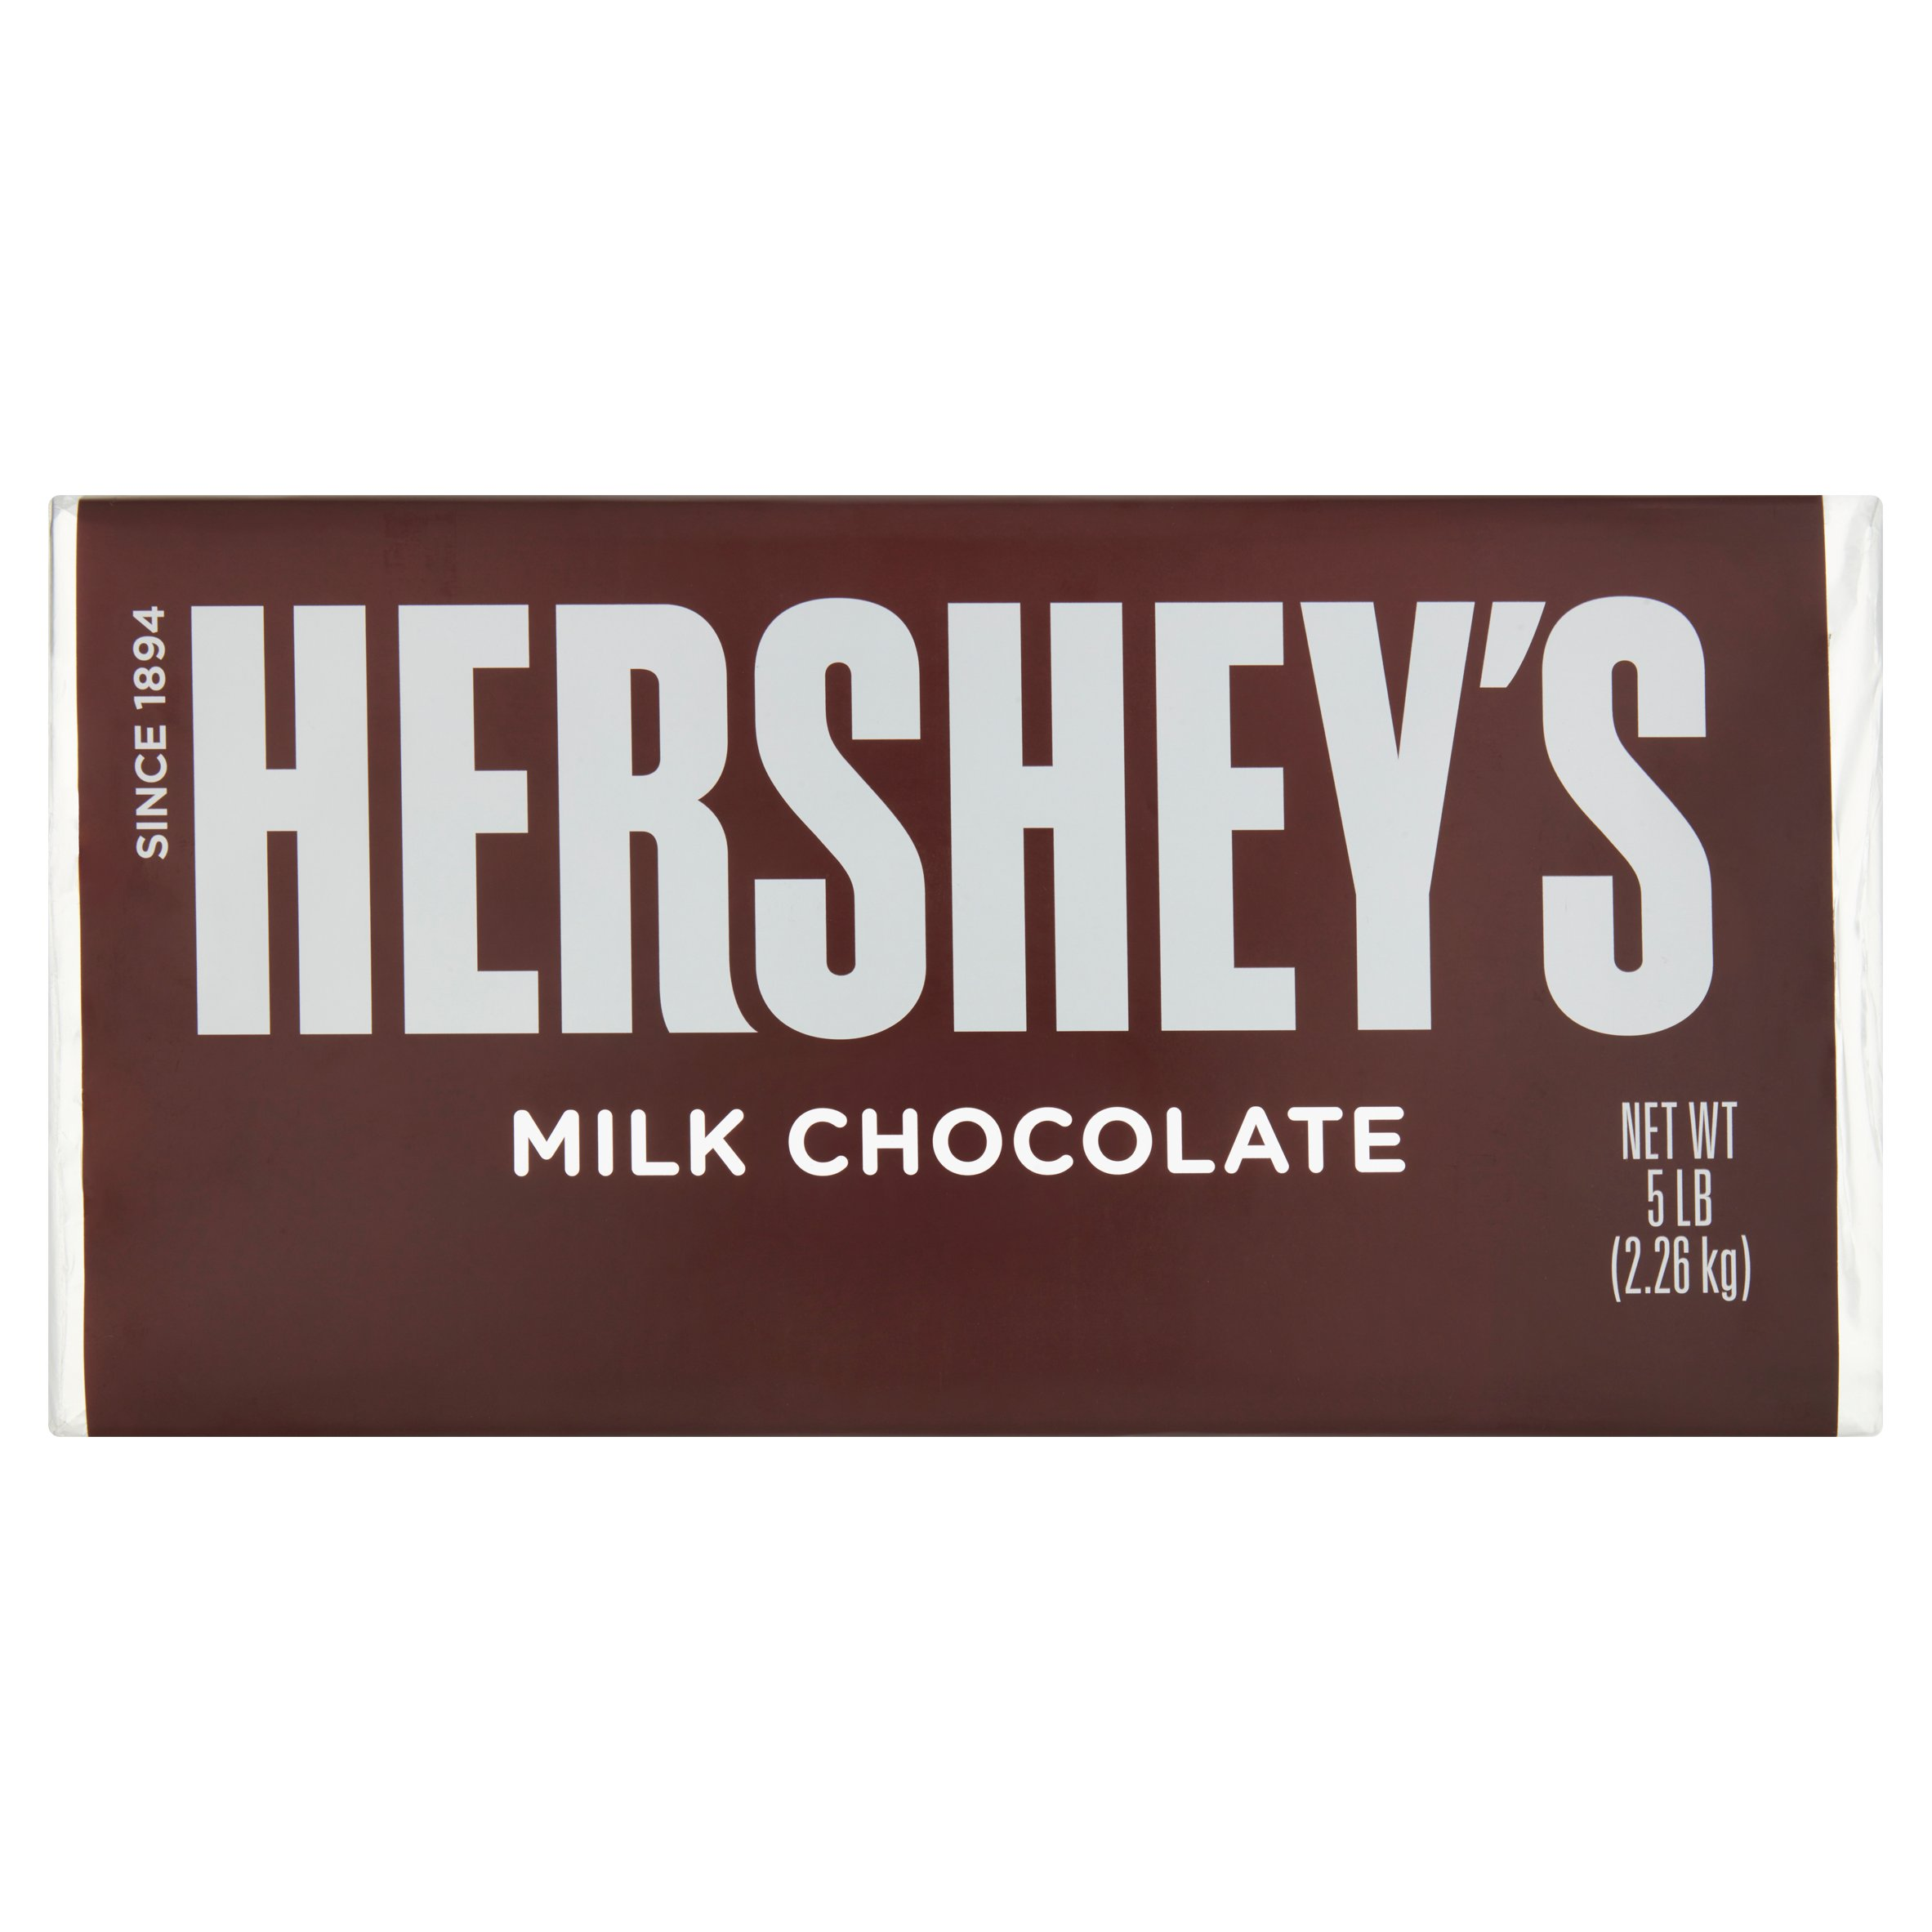 HERSHEY'S Milk Chocolate Bar, 5 lbs by The Hershey Company